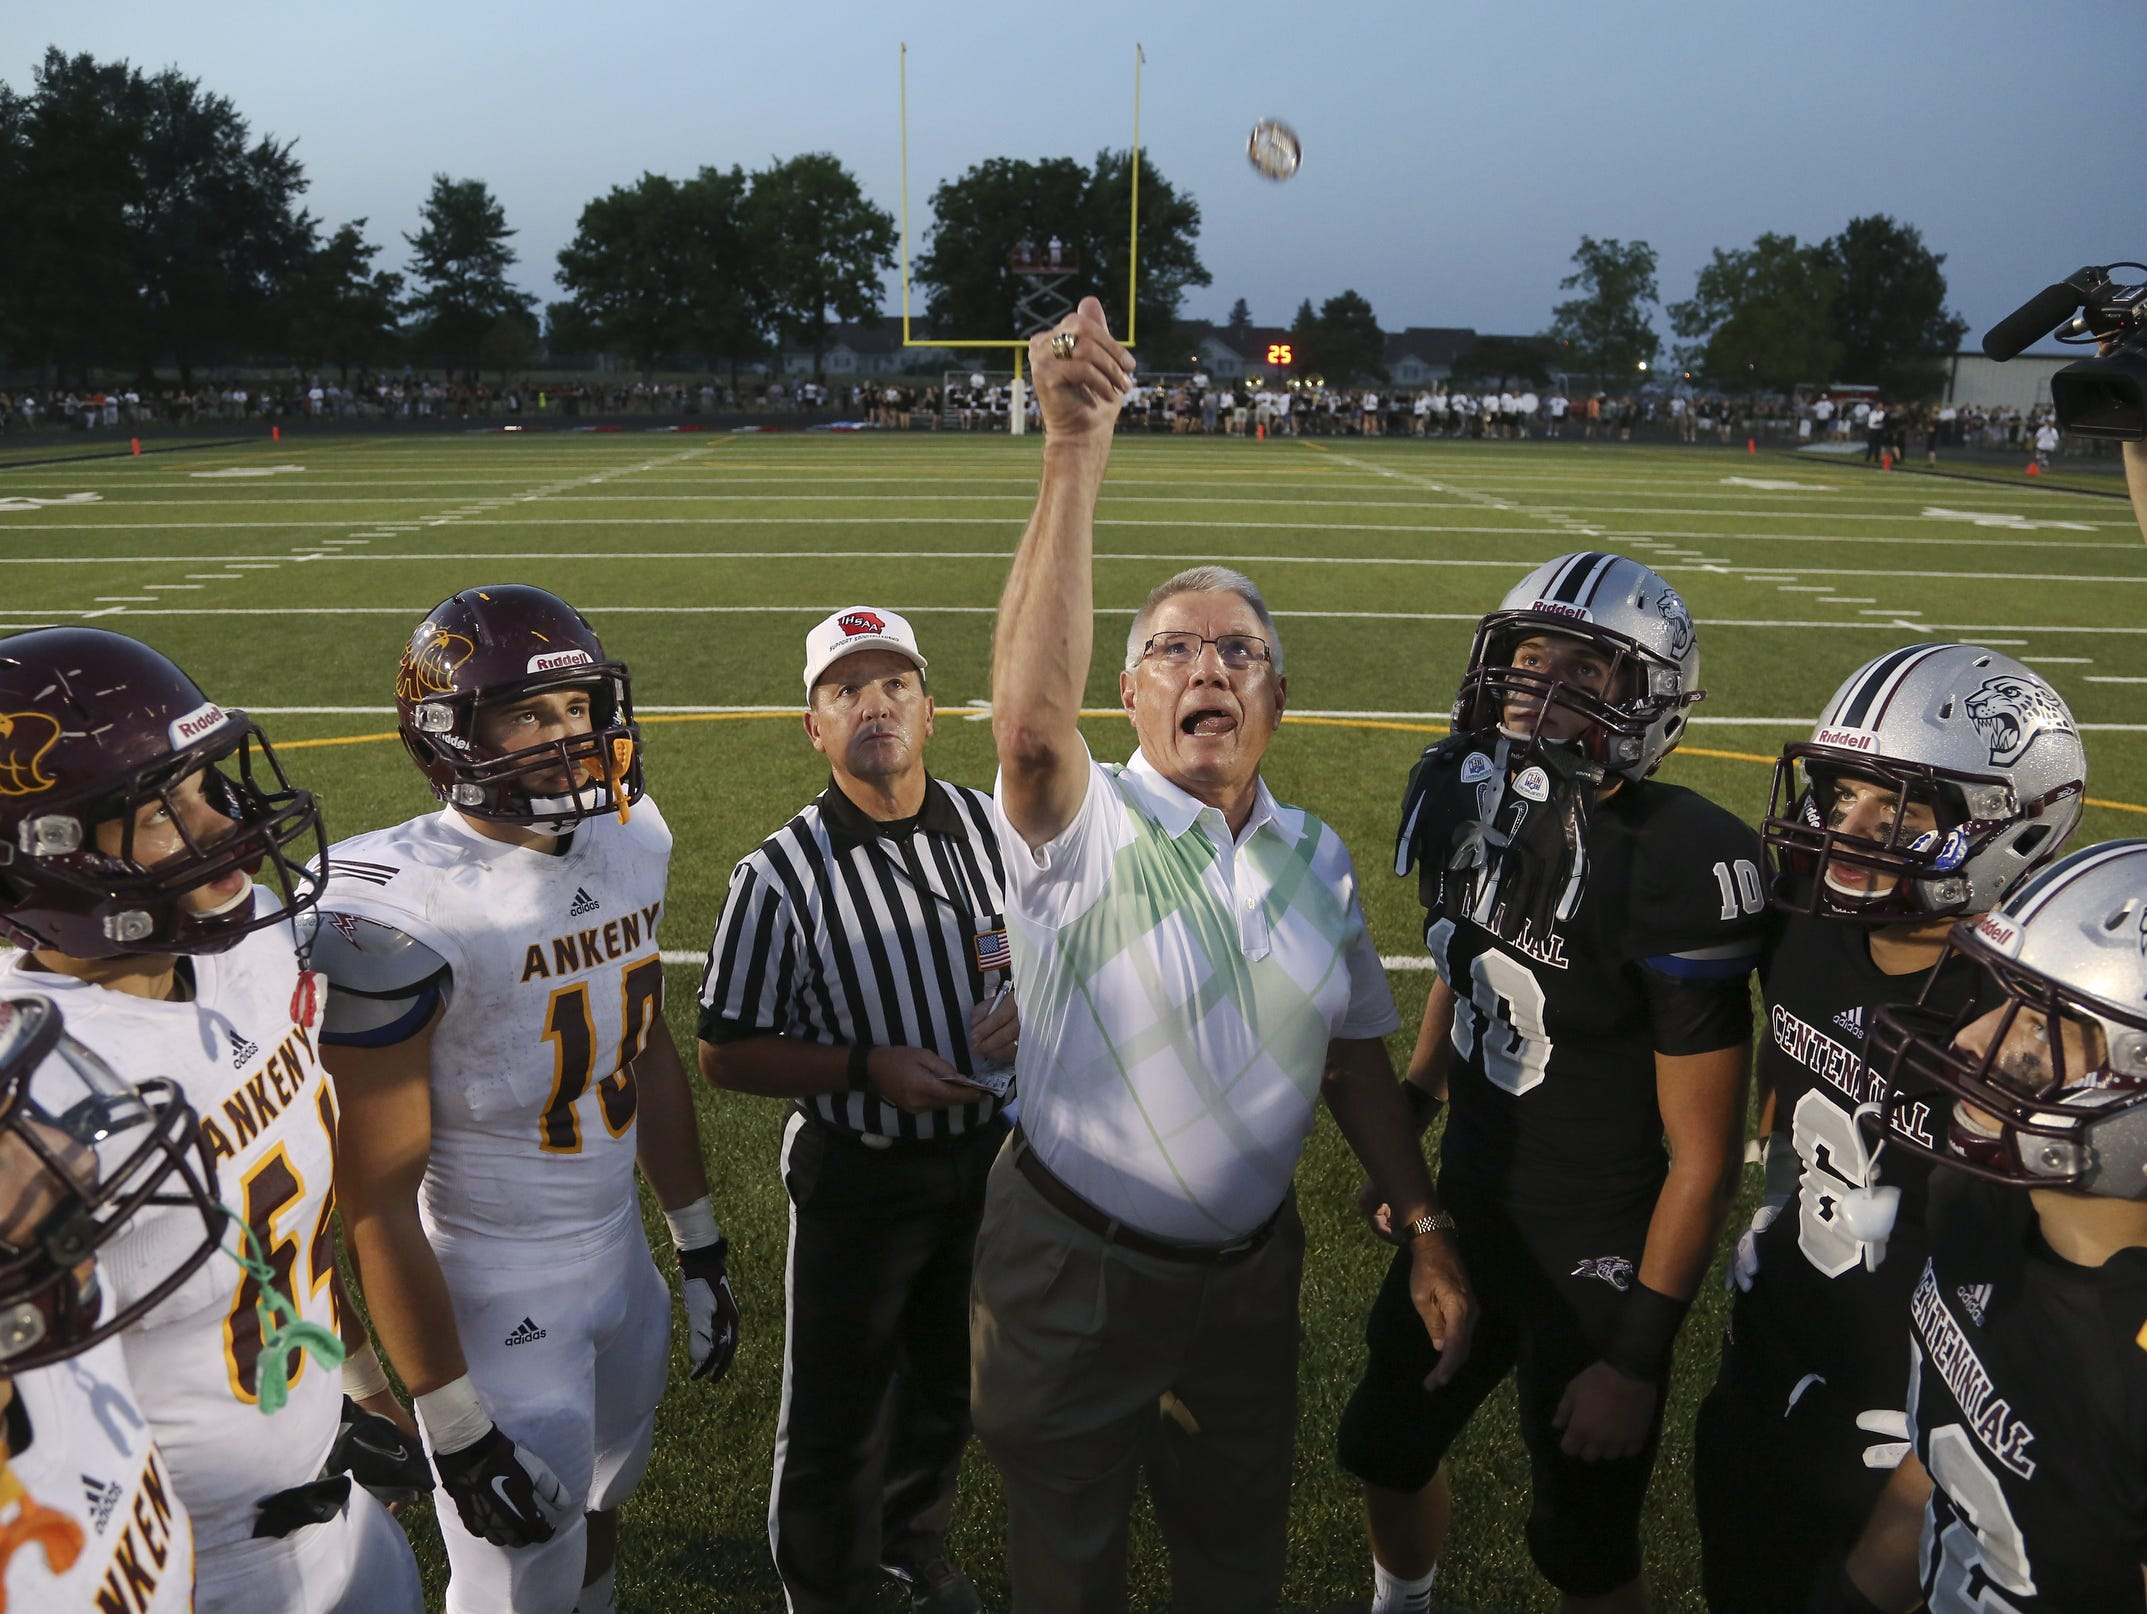 Rick Wulkow flips a coin before the start of a football game between Ankeny High and Ankeny Centennial in 2013. Wulkow has been a visible leader for the Iowa High School Athletic Association over the past decade.